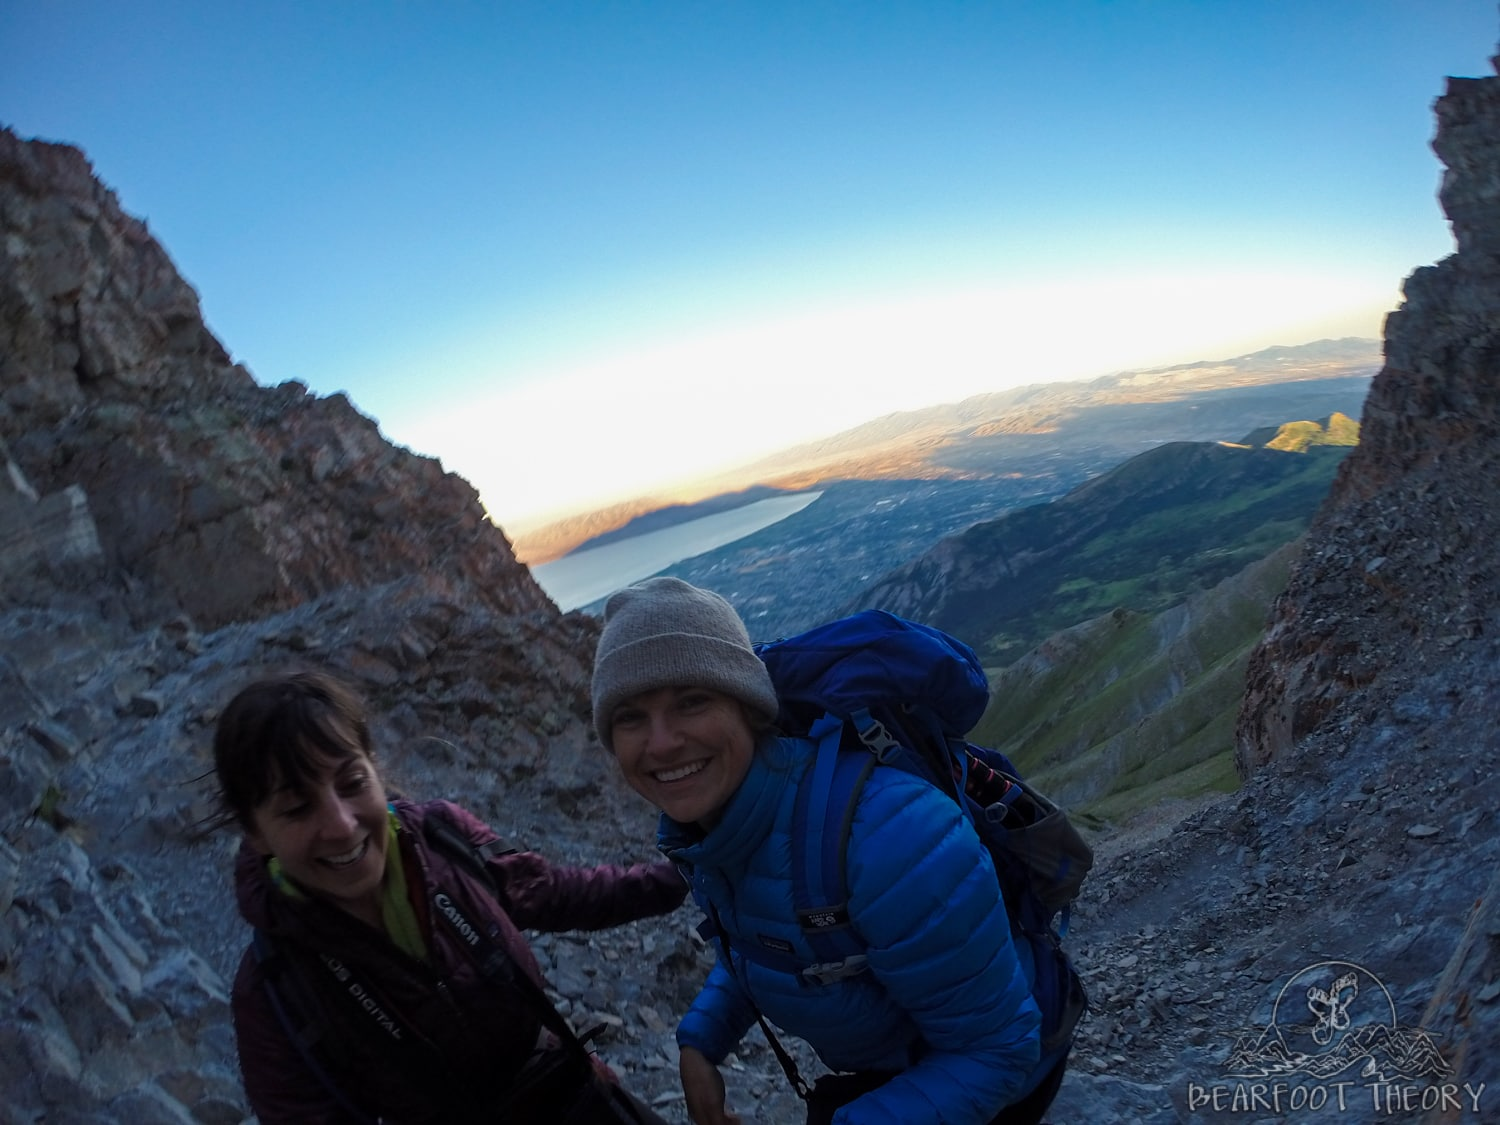 Hiking to the summit of Mount Timpanogos